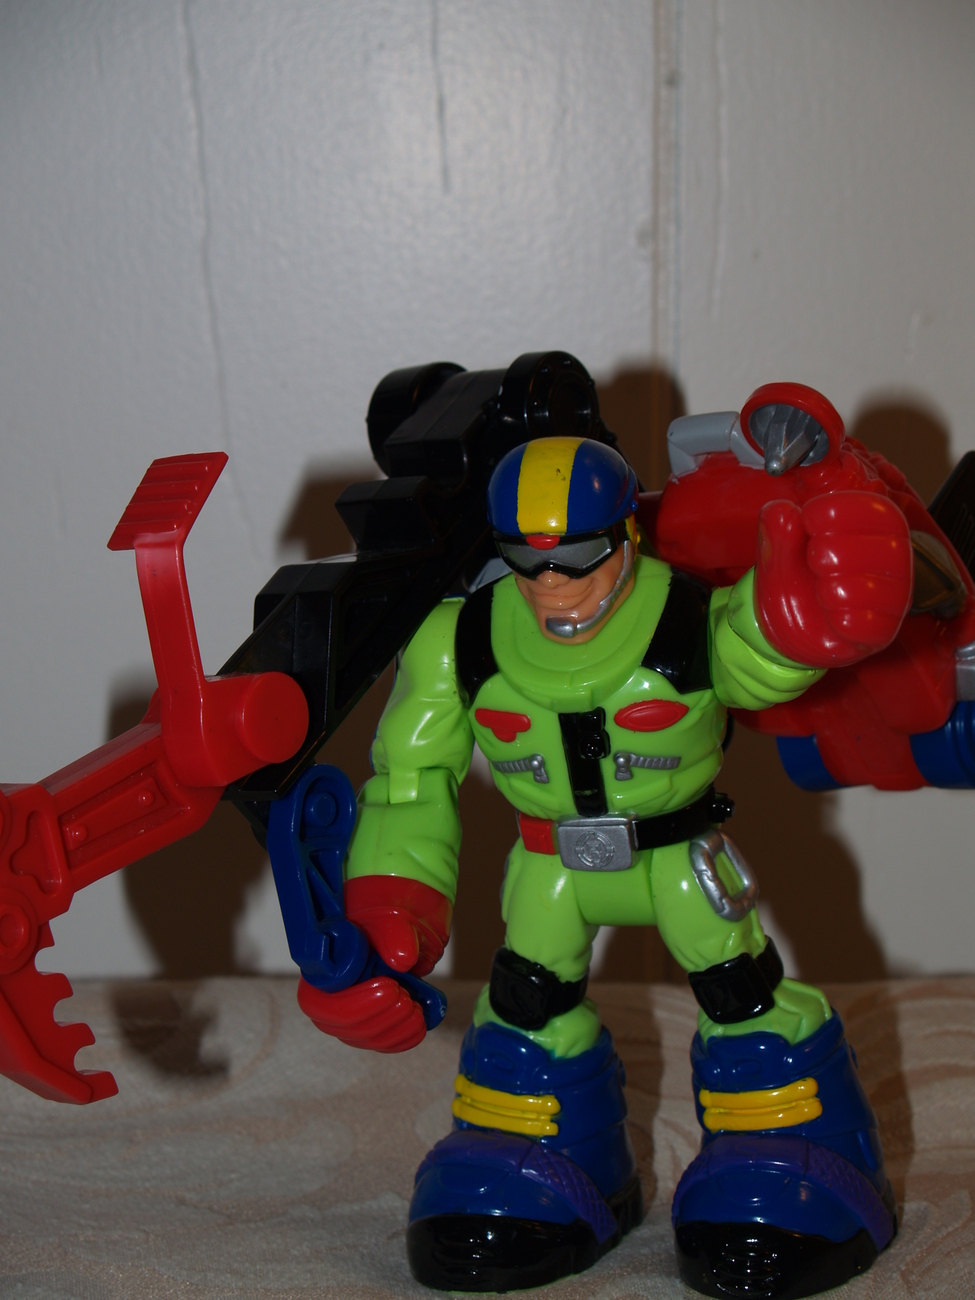 Fisher Price Rescue Heroeses Action Figure